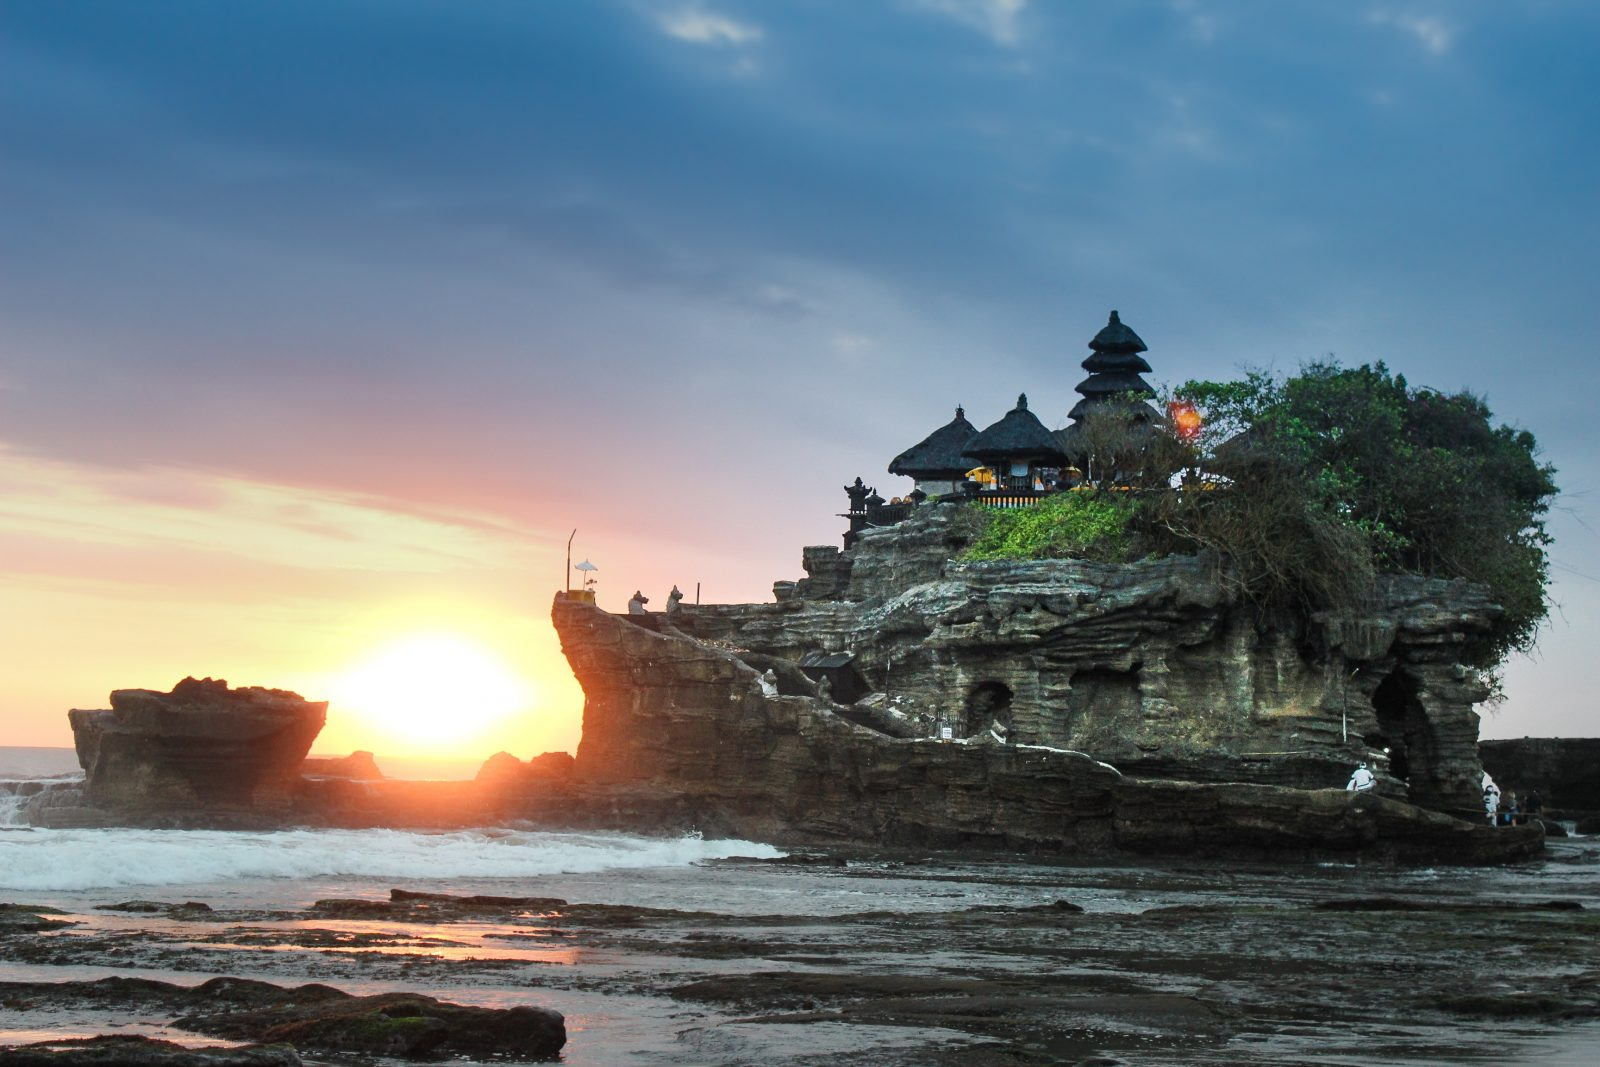 Scenic image of hotel on a rock in Bali